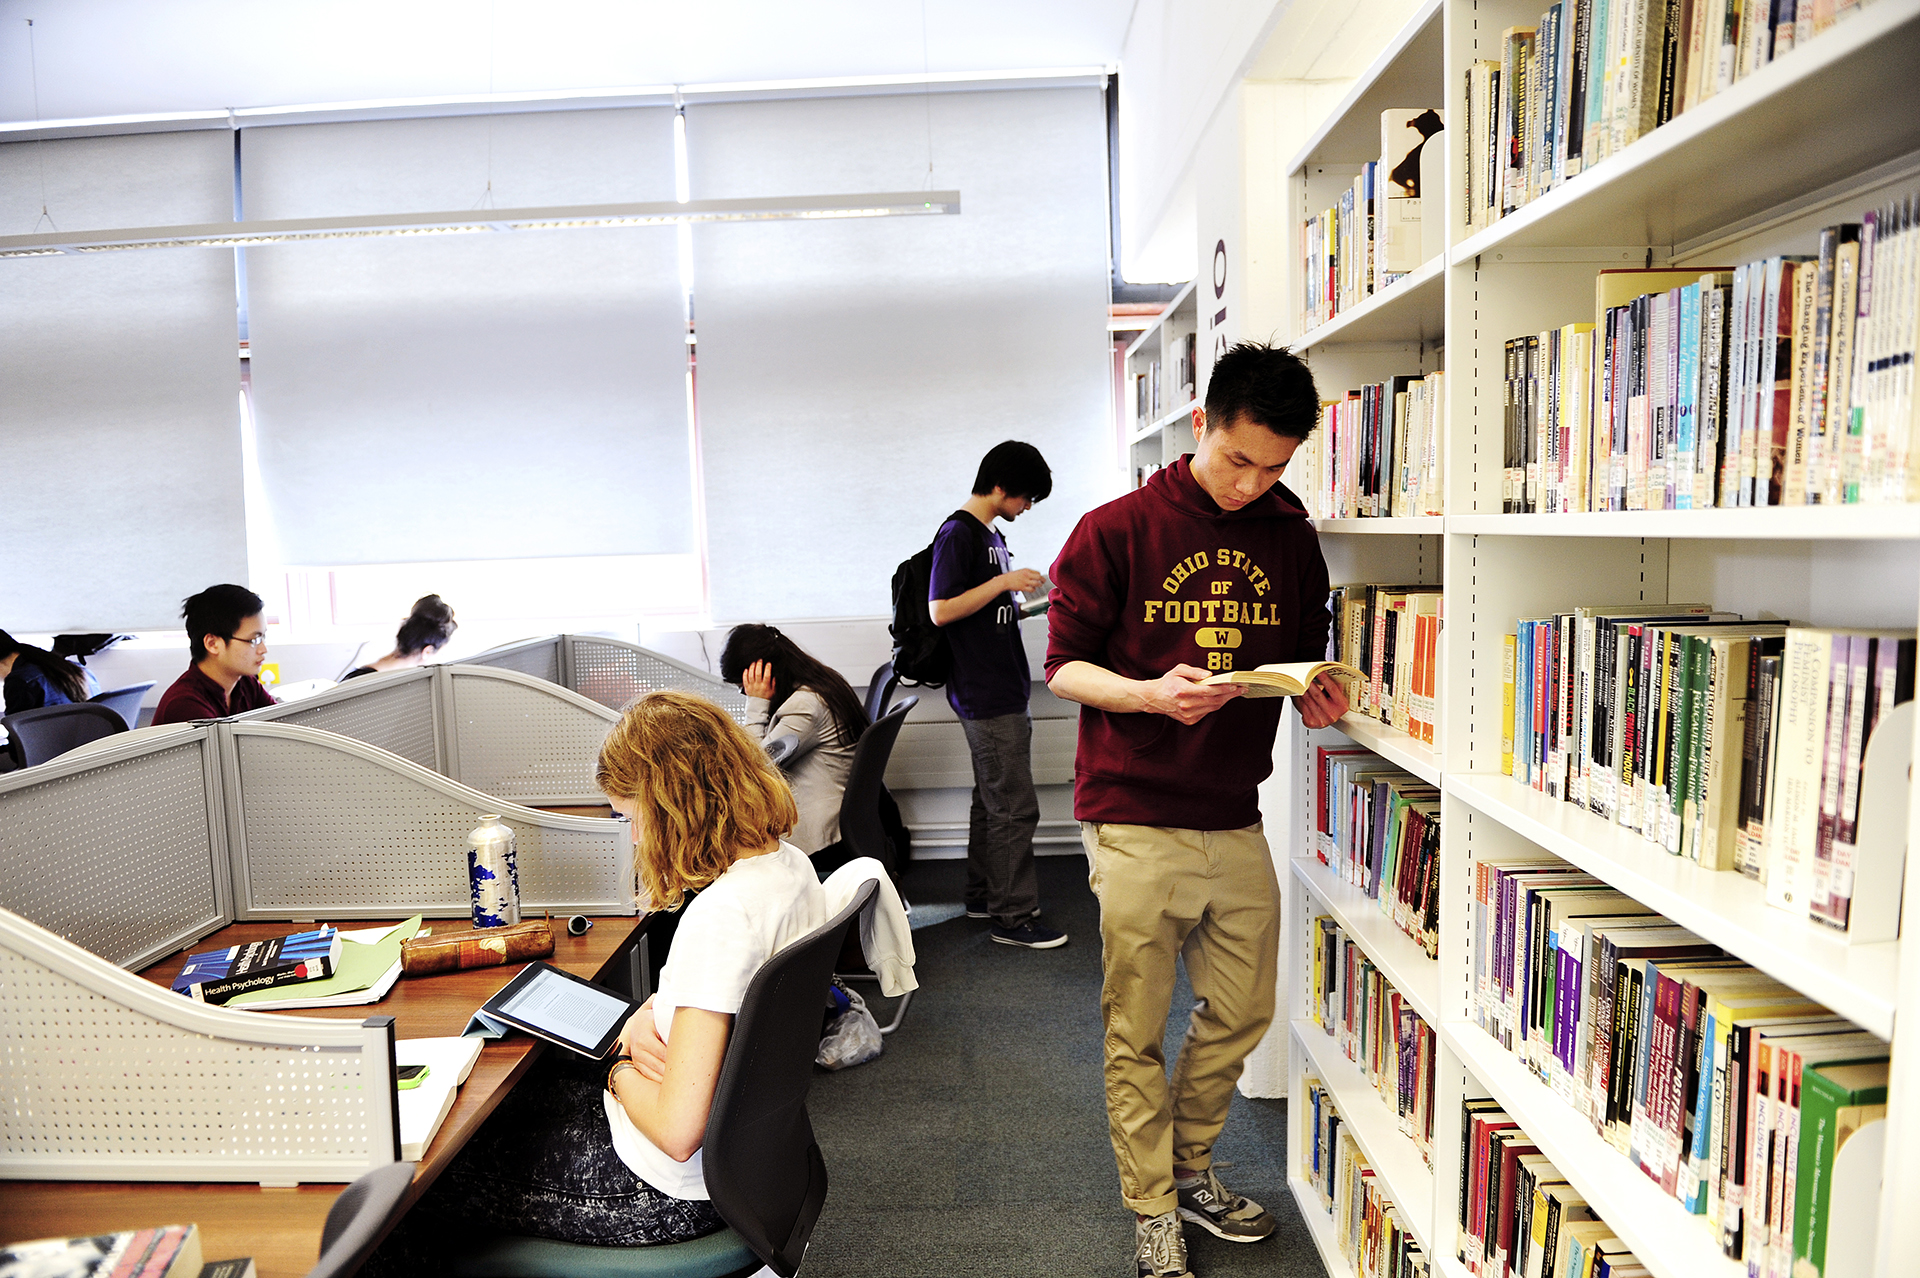 Students reading books and studying in City, University of London library